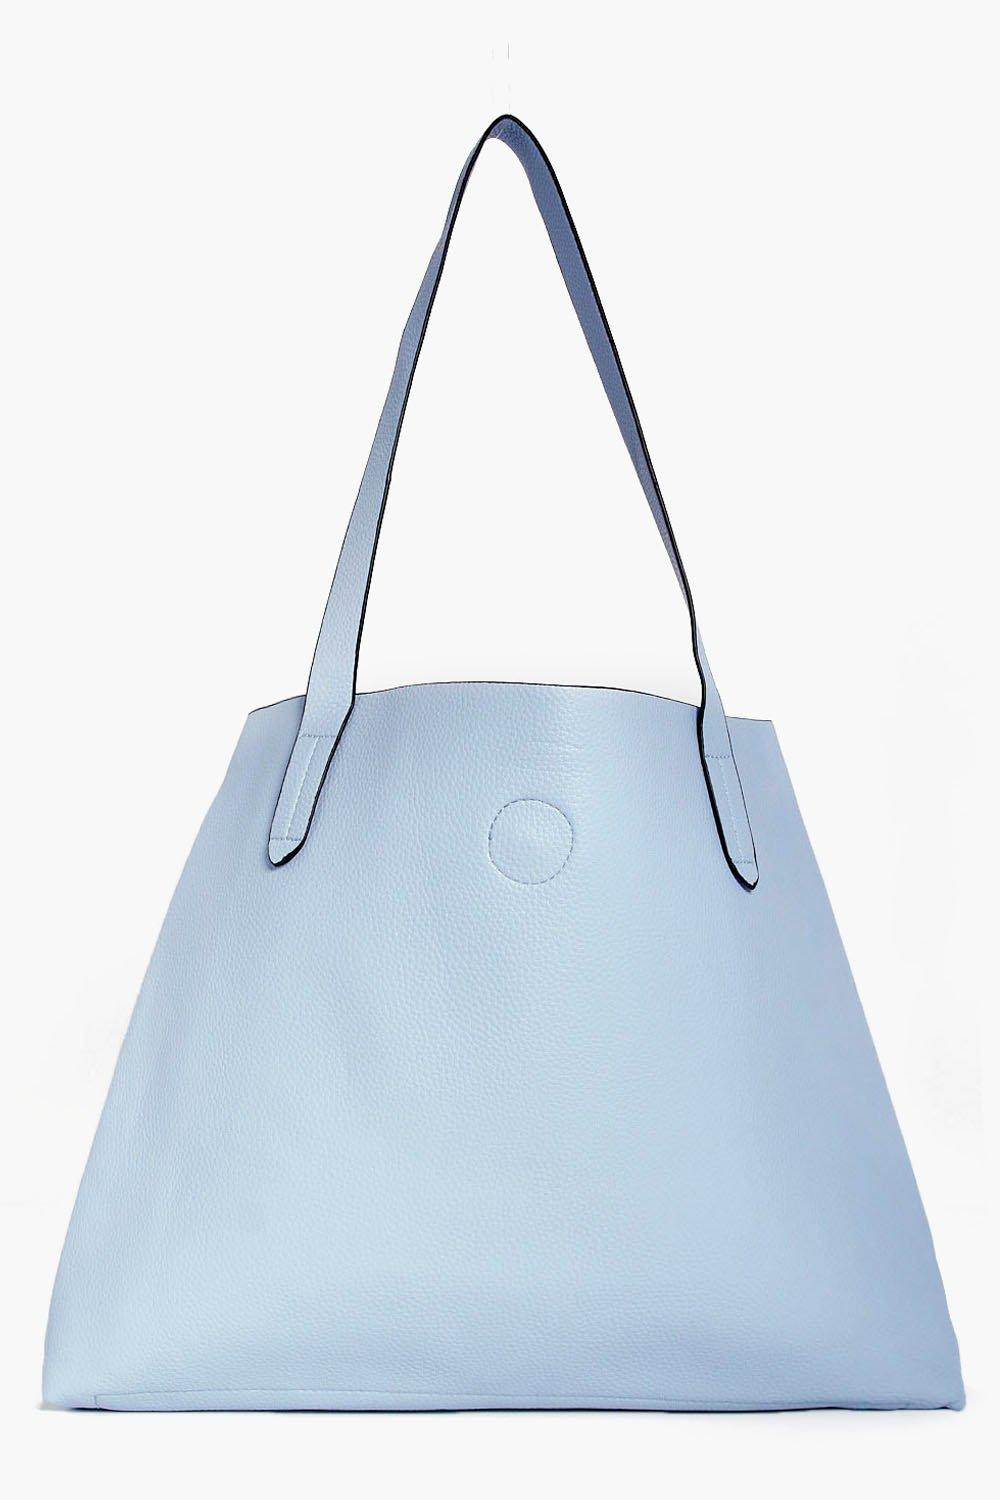 Basic Popper Shopper Bag - pale blue - Victoria Ba